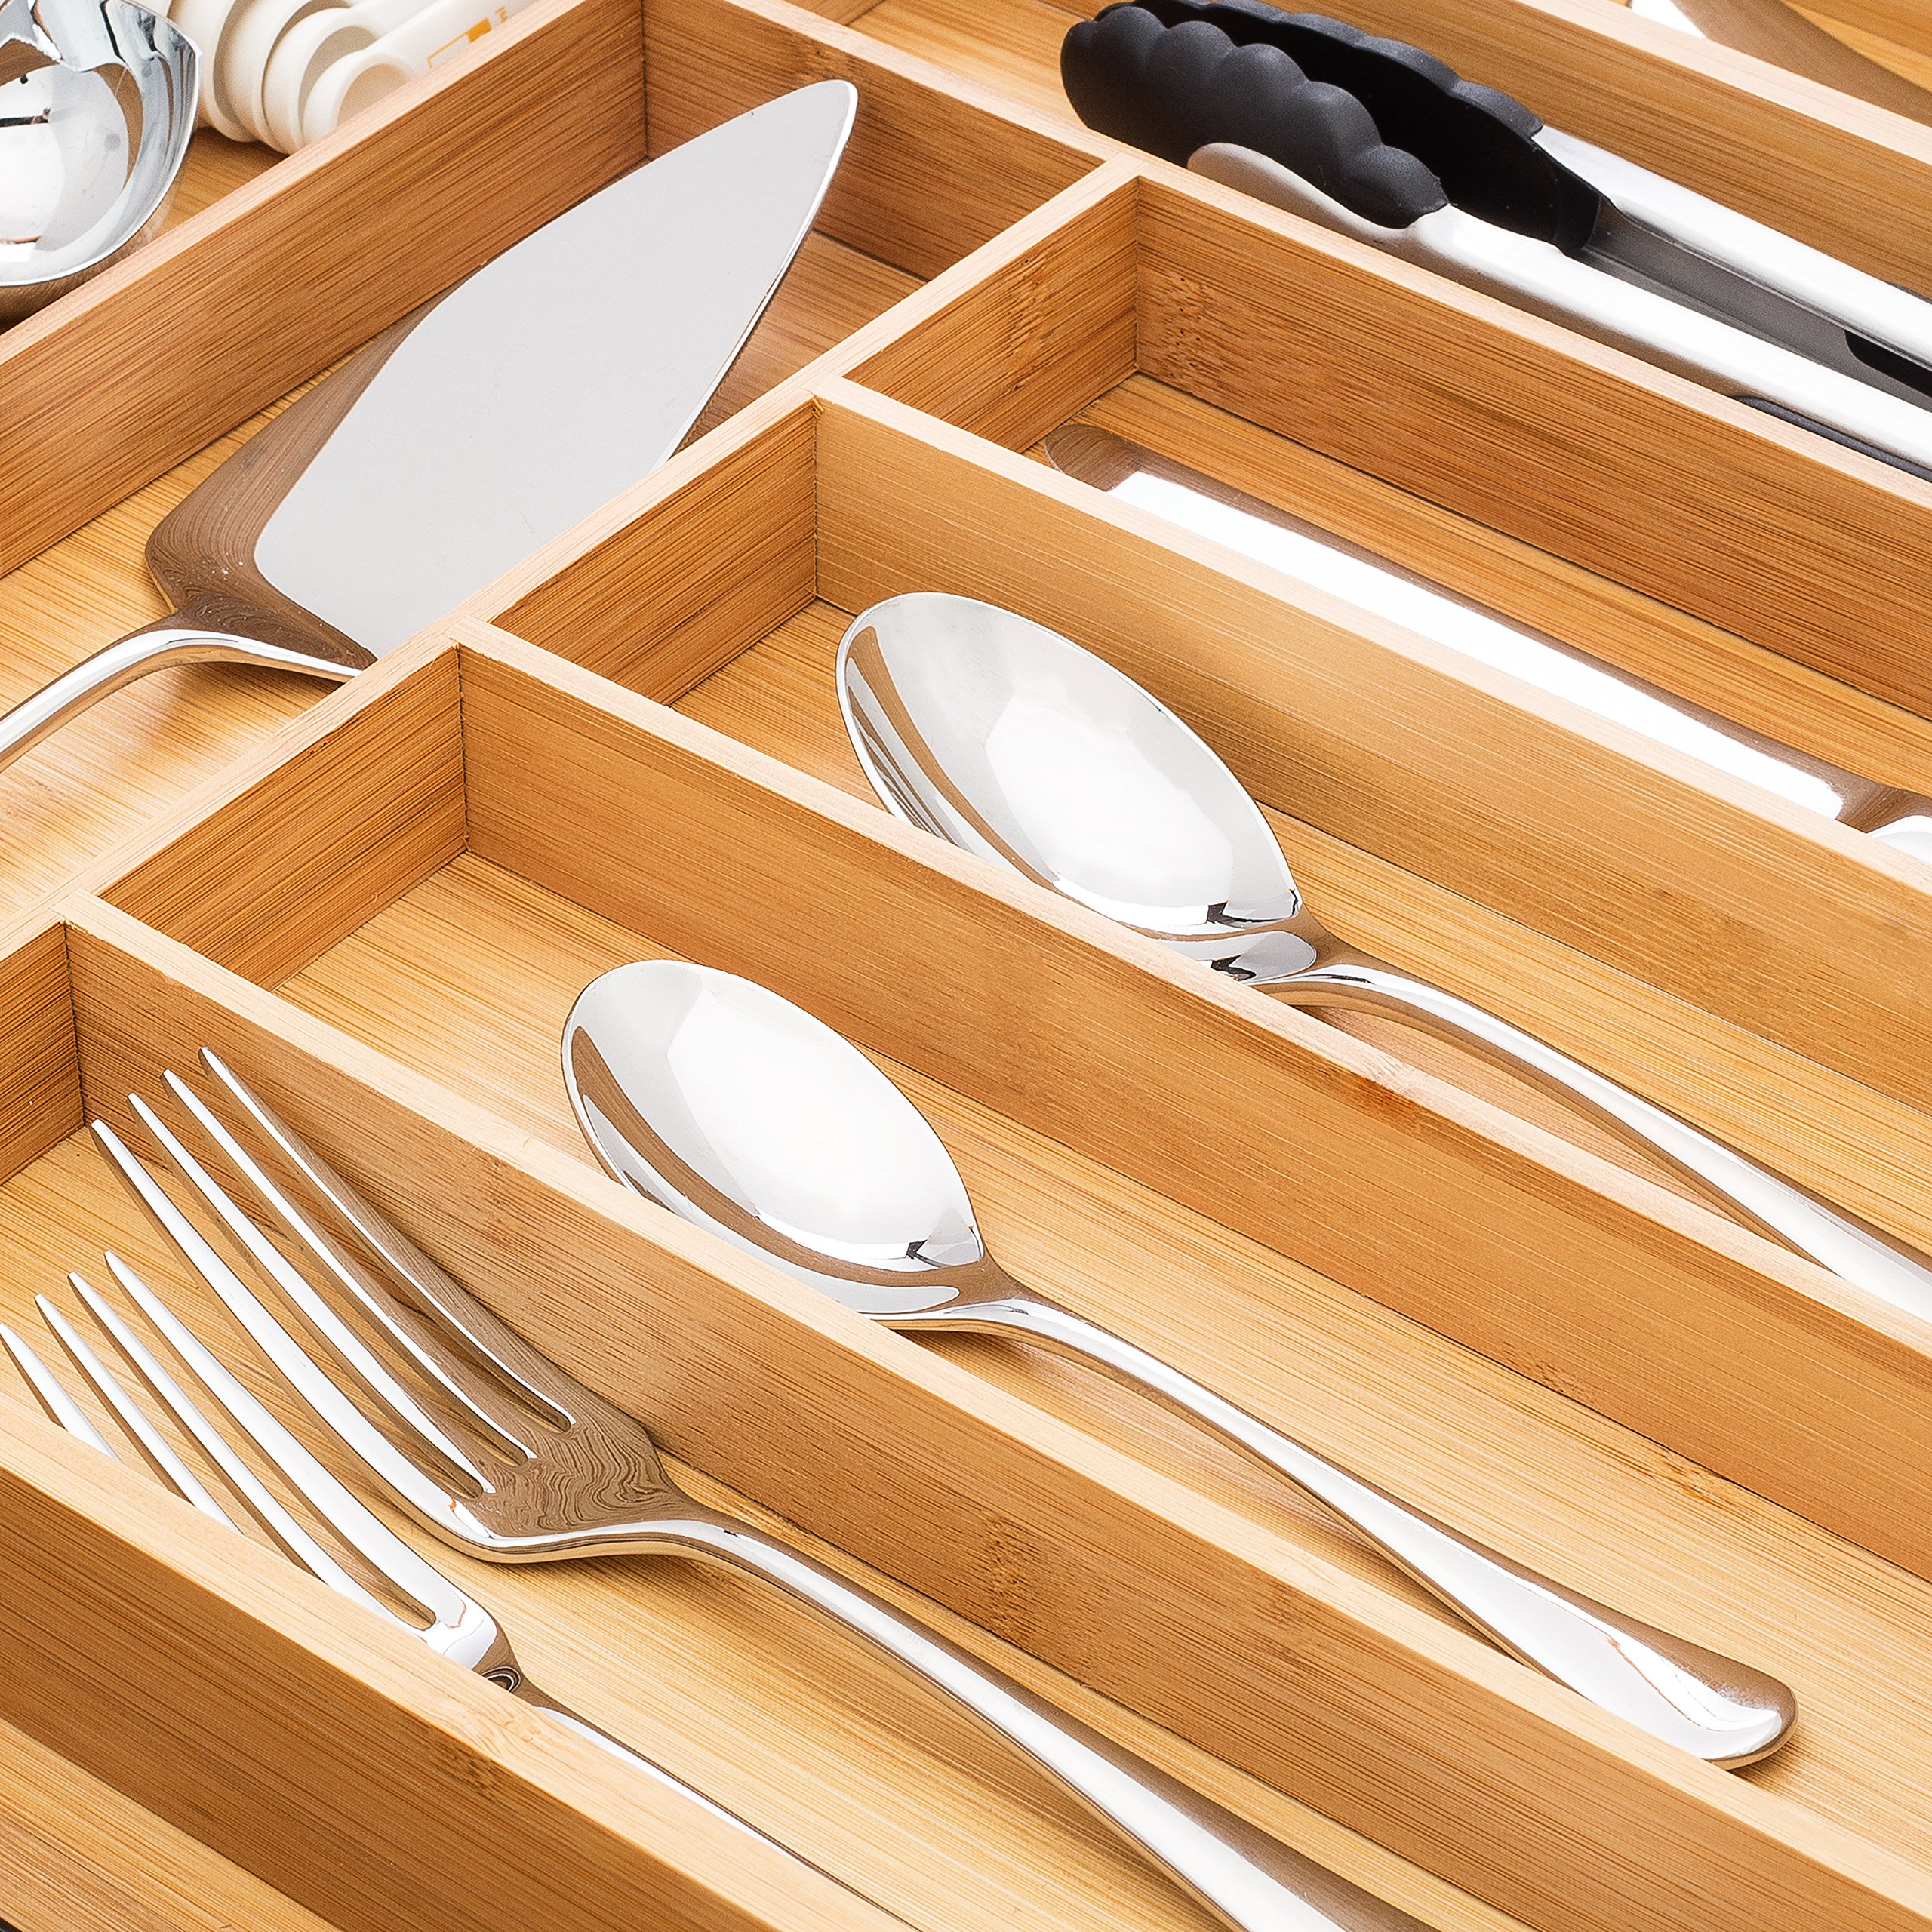 Bamboo Expandable Drawer Organizer, Premium Cutlery and Utensil Tray, 100% Pure Bamboo, Adjustable Kitchen Drawer Divider ... (7 Compartments Expandable) by Artisware (Image #6)